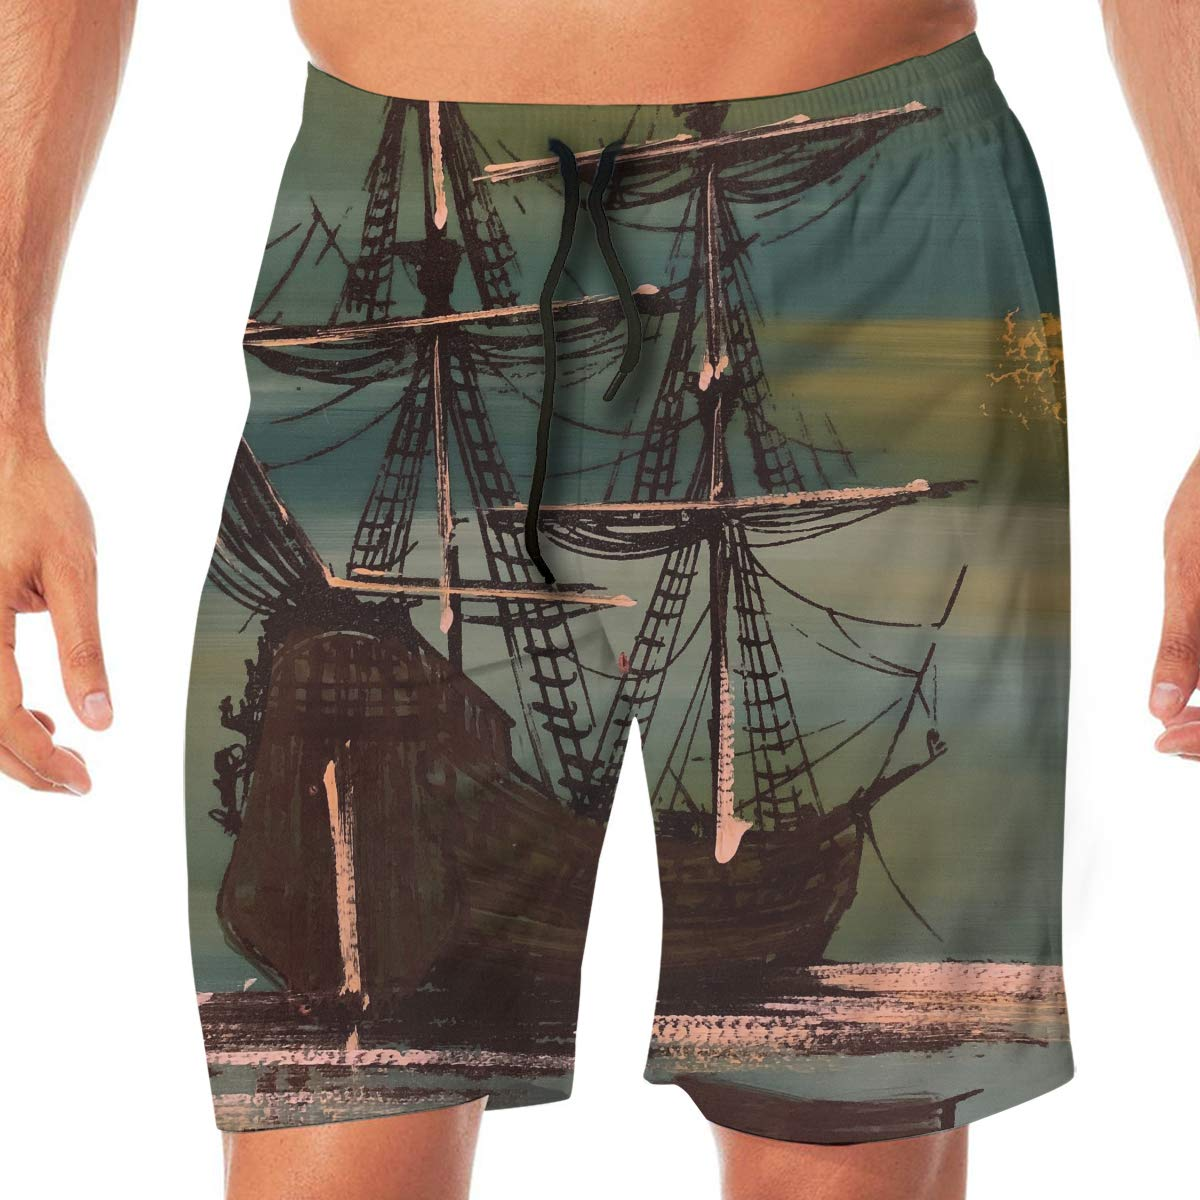 Nautical Vintage Sailing Pirate Ship Quick Dry Elastic Lace Boardshorts Beach Shorts Pants Swim Trunks Swimsuit with Pockets.